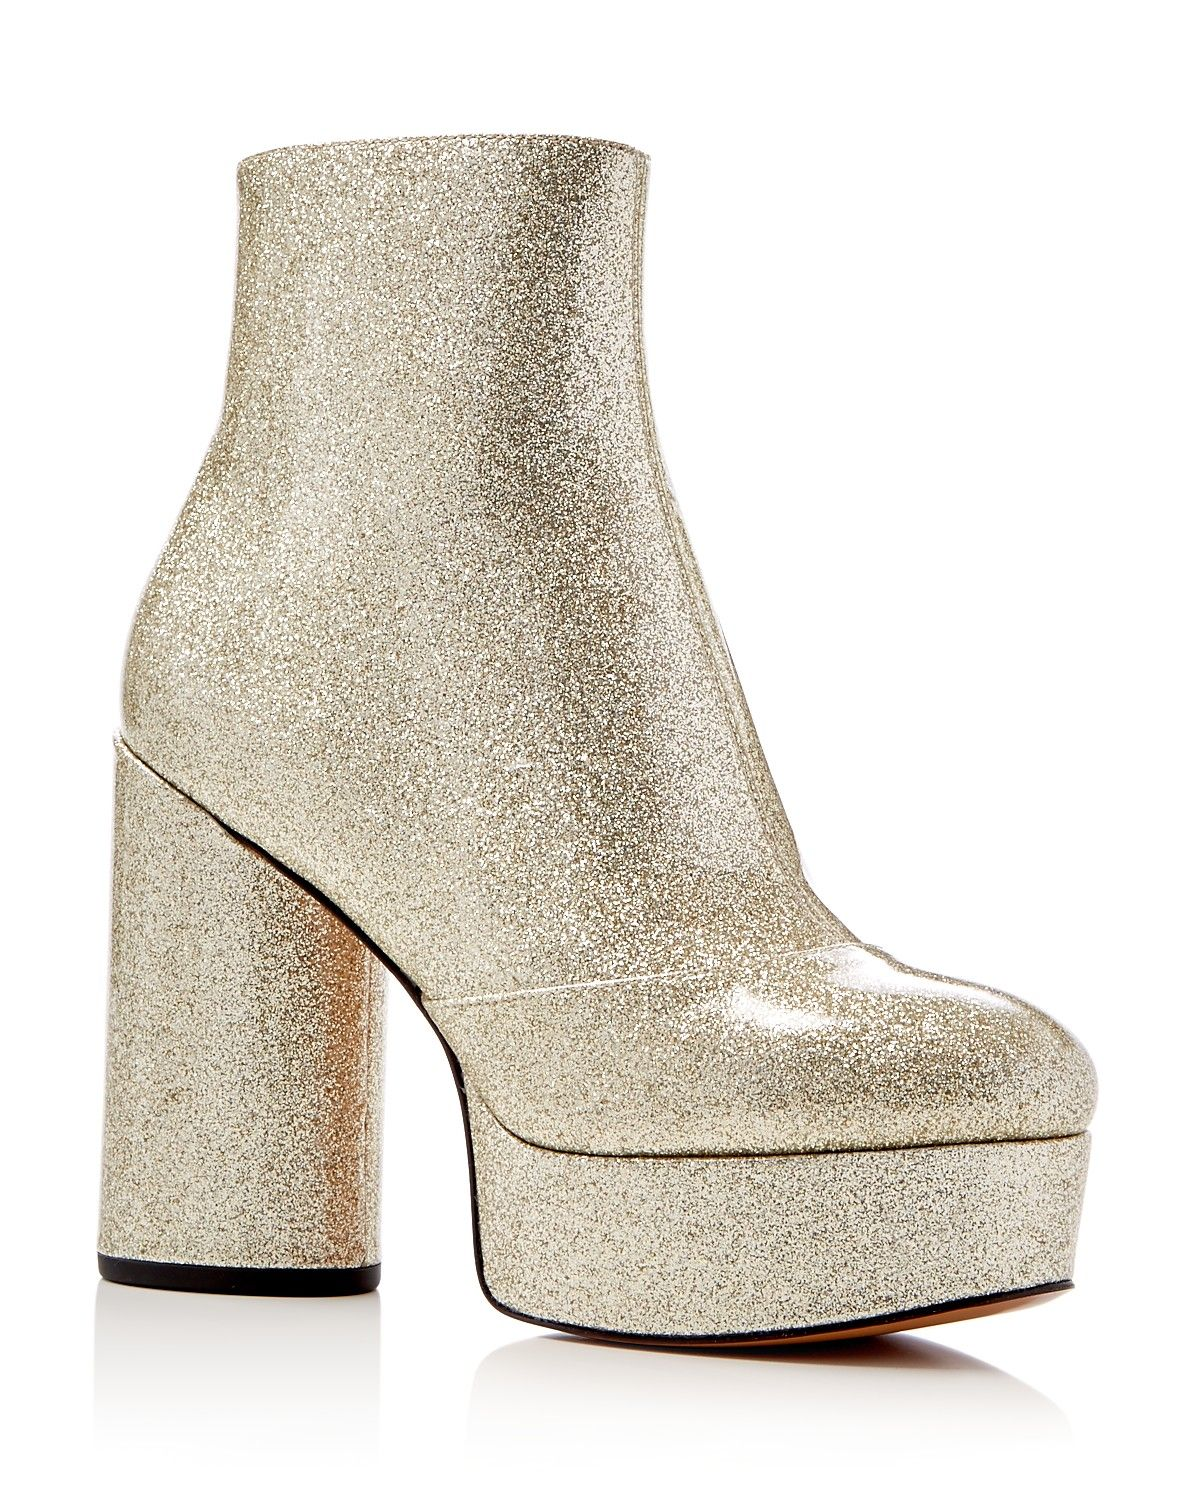 87cd954a9 Marc Jacob s platform booties step straight out of the  70s glam-rock era  in a glittering patent leather finish.